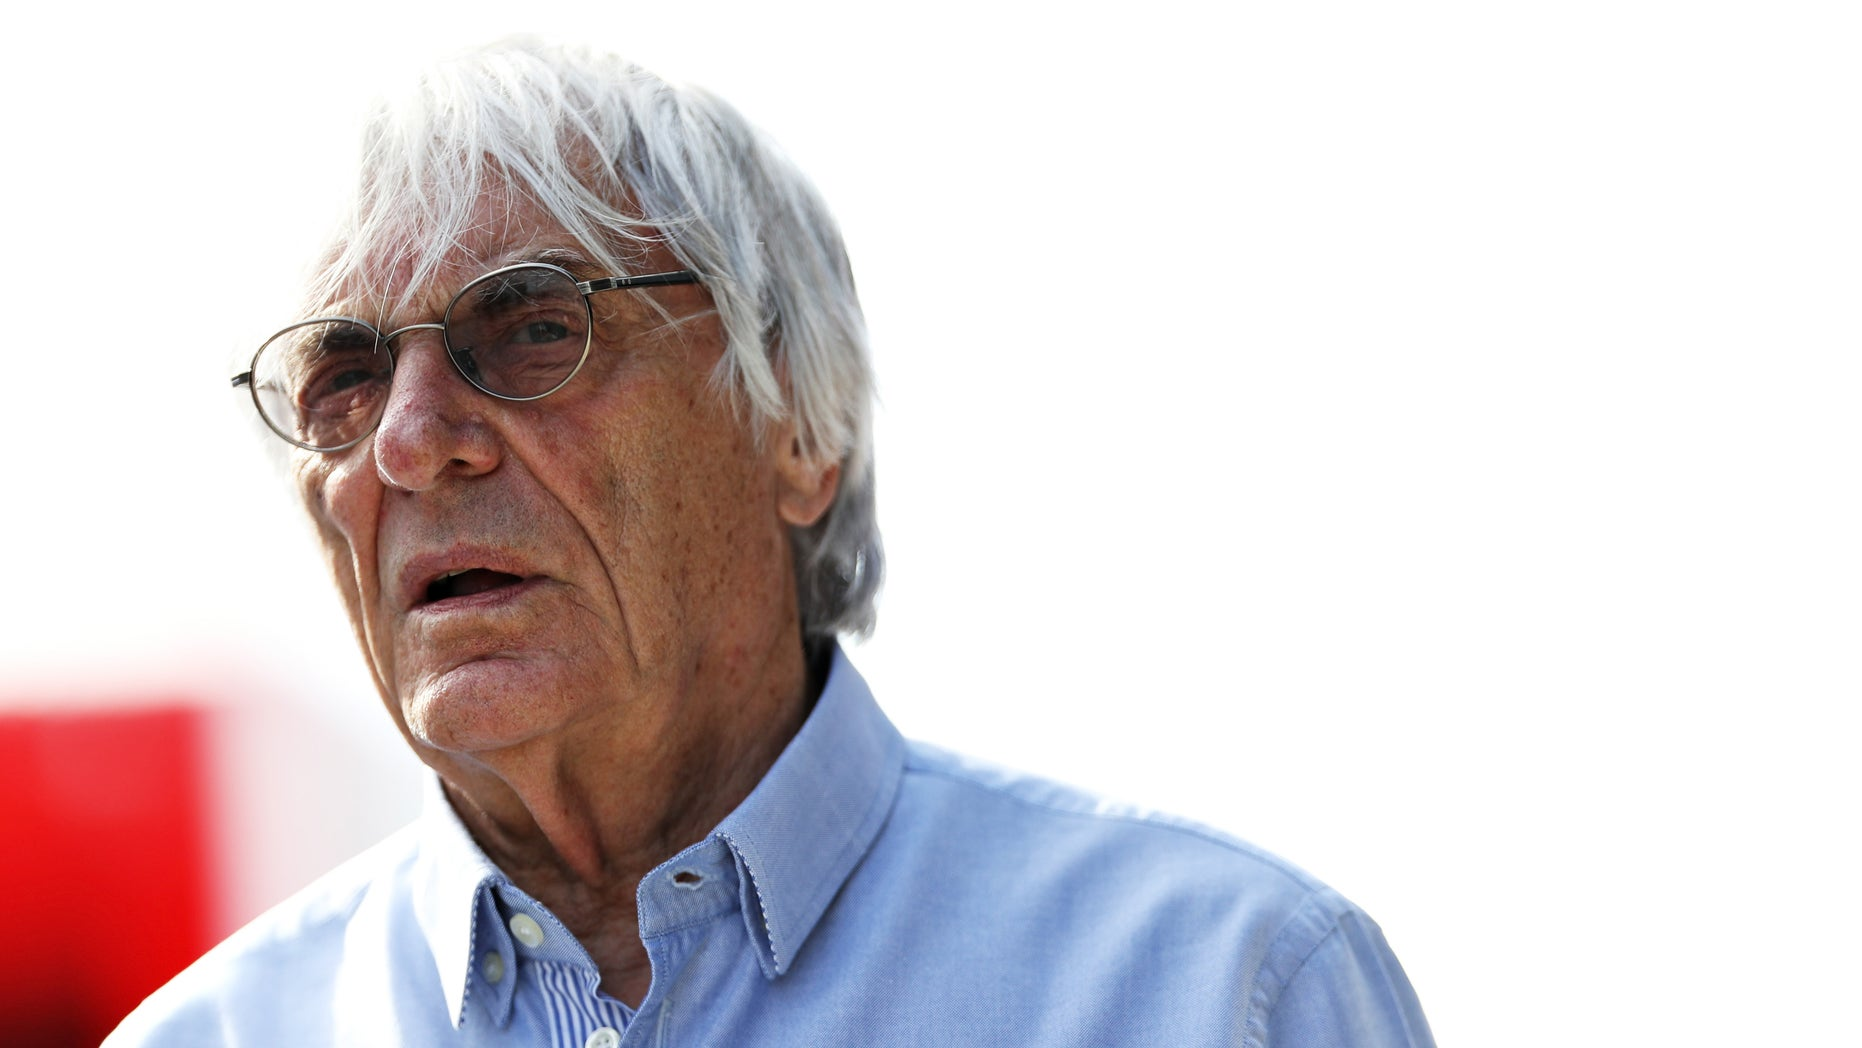 F1 supremo Bernie Ecclestone walks in the Paddock during practice for the Formula One Grand Prix of Hungary at Hungaroring on July 22, 2016 in Budapest, Hungary.  (Photo by Mark Thompson/Getty Images)